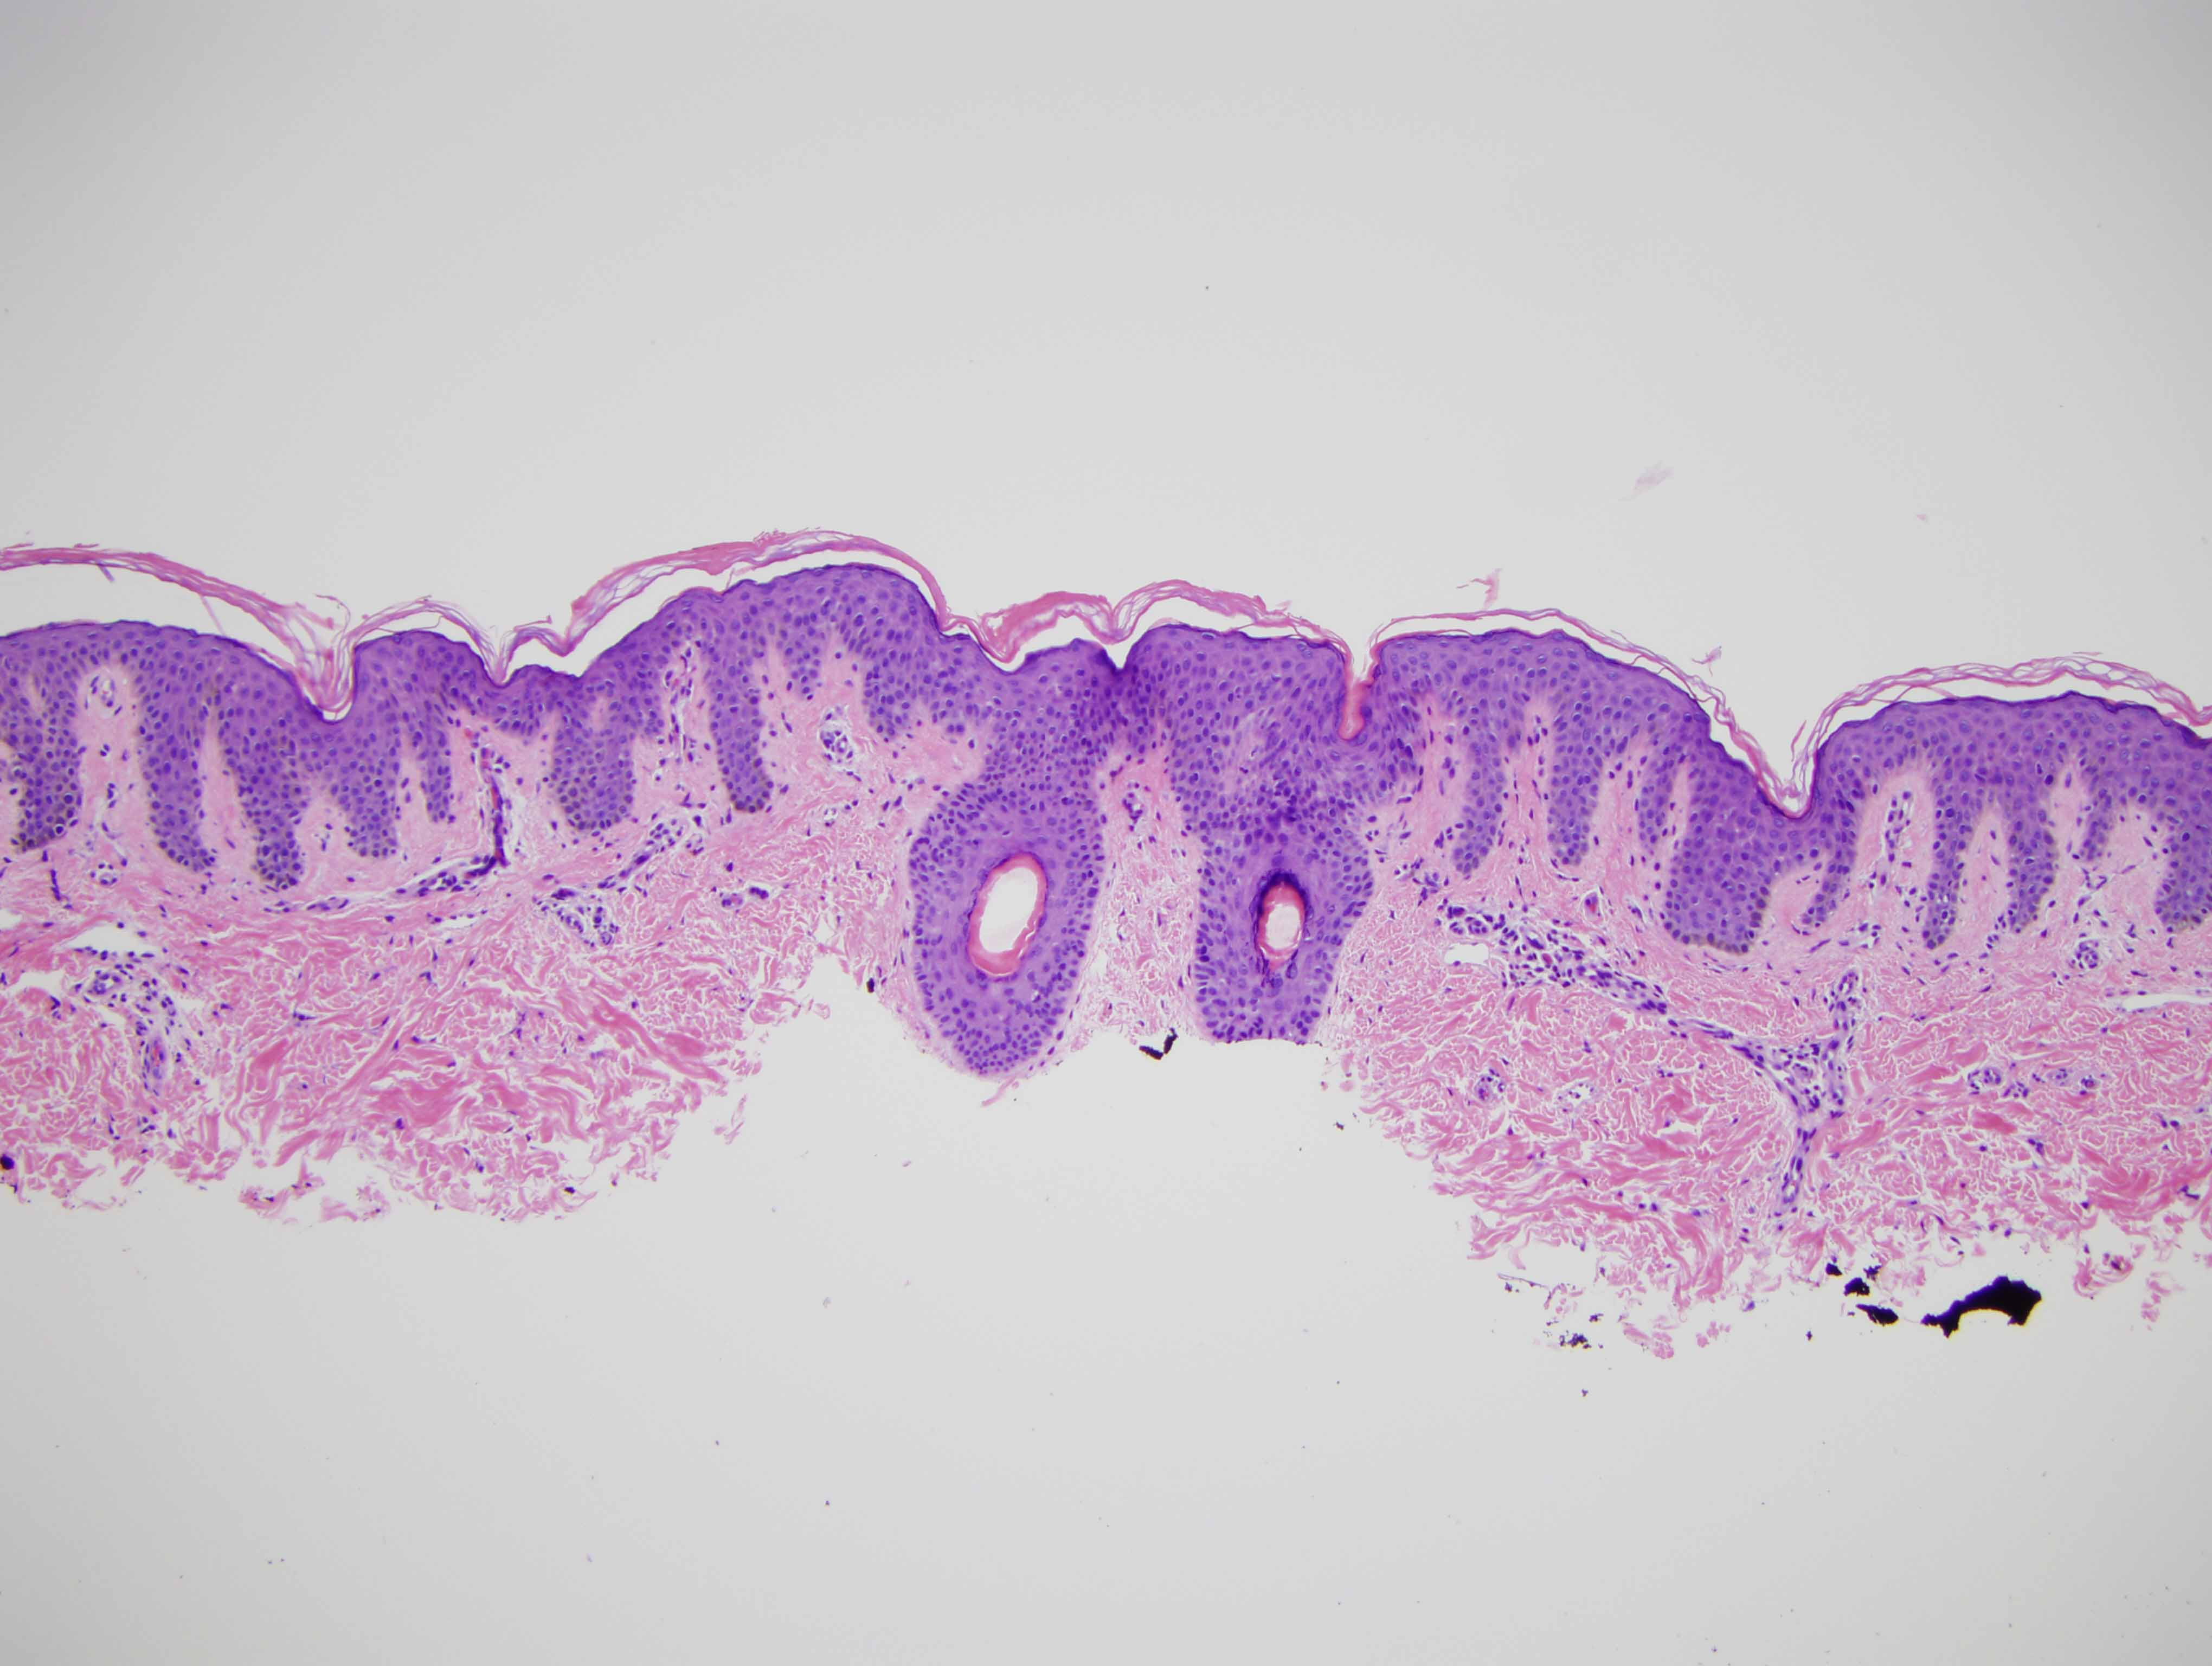 Slide 1: There are two closely apposed hair follicles also potentially reflective of an unusual hamartomatous pattern.